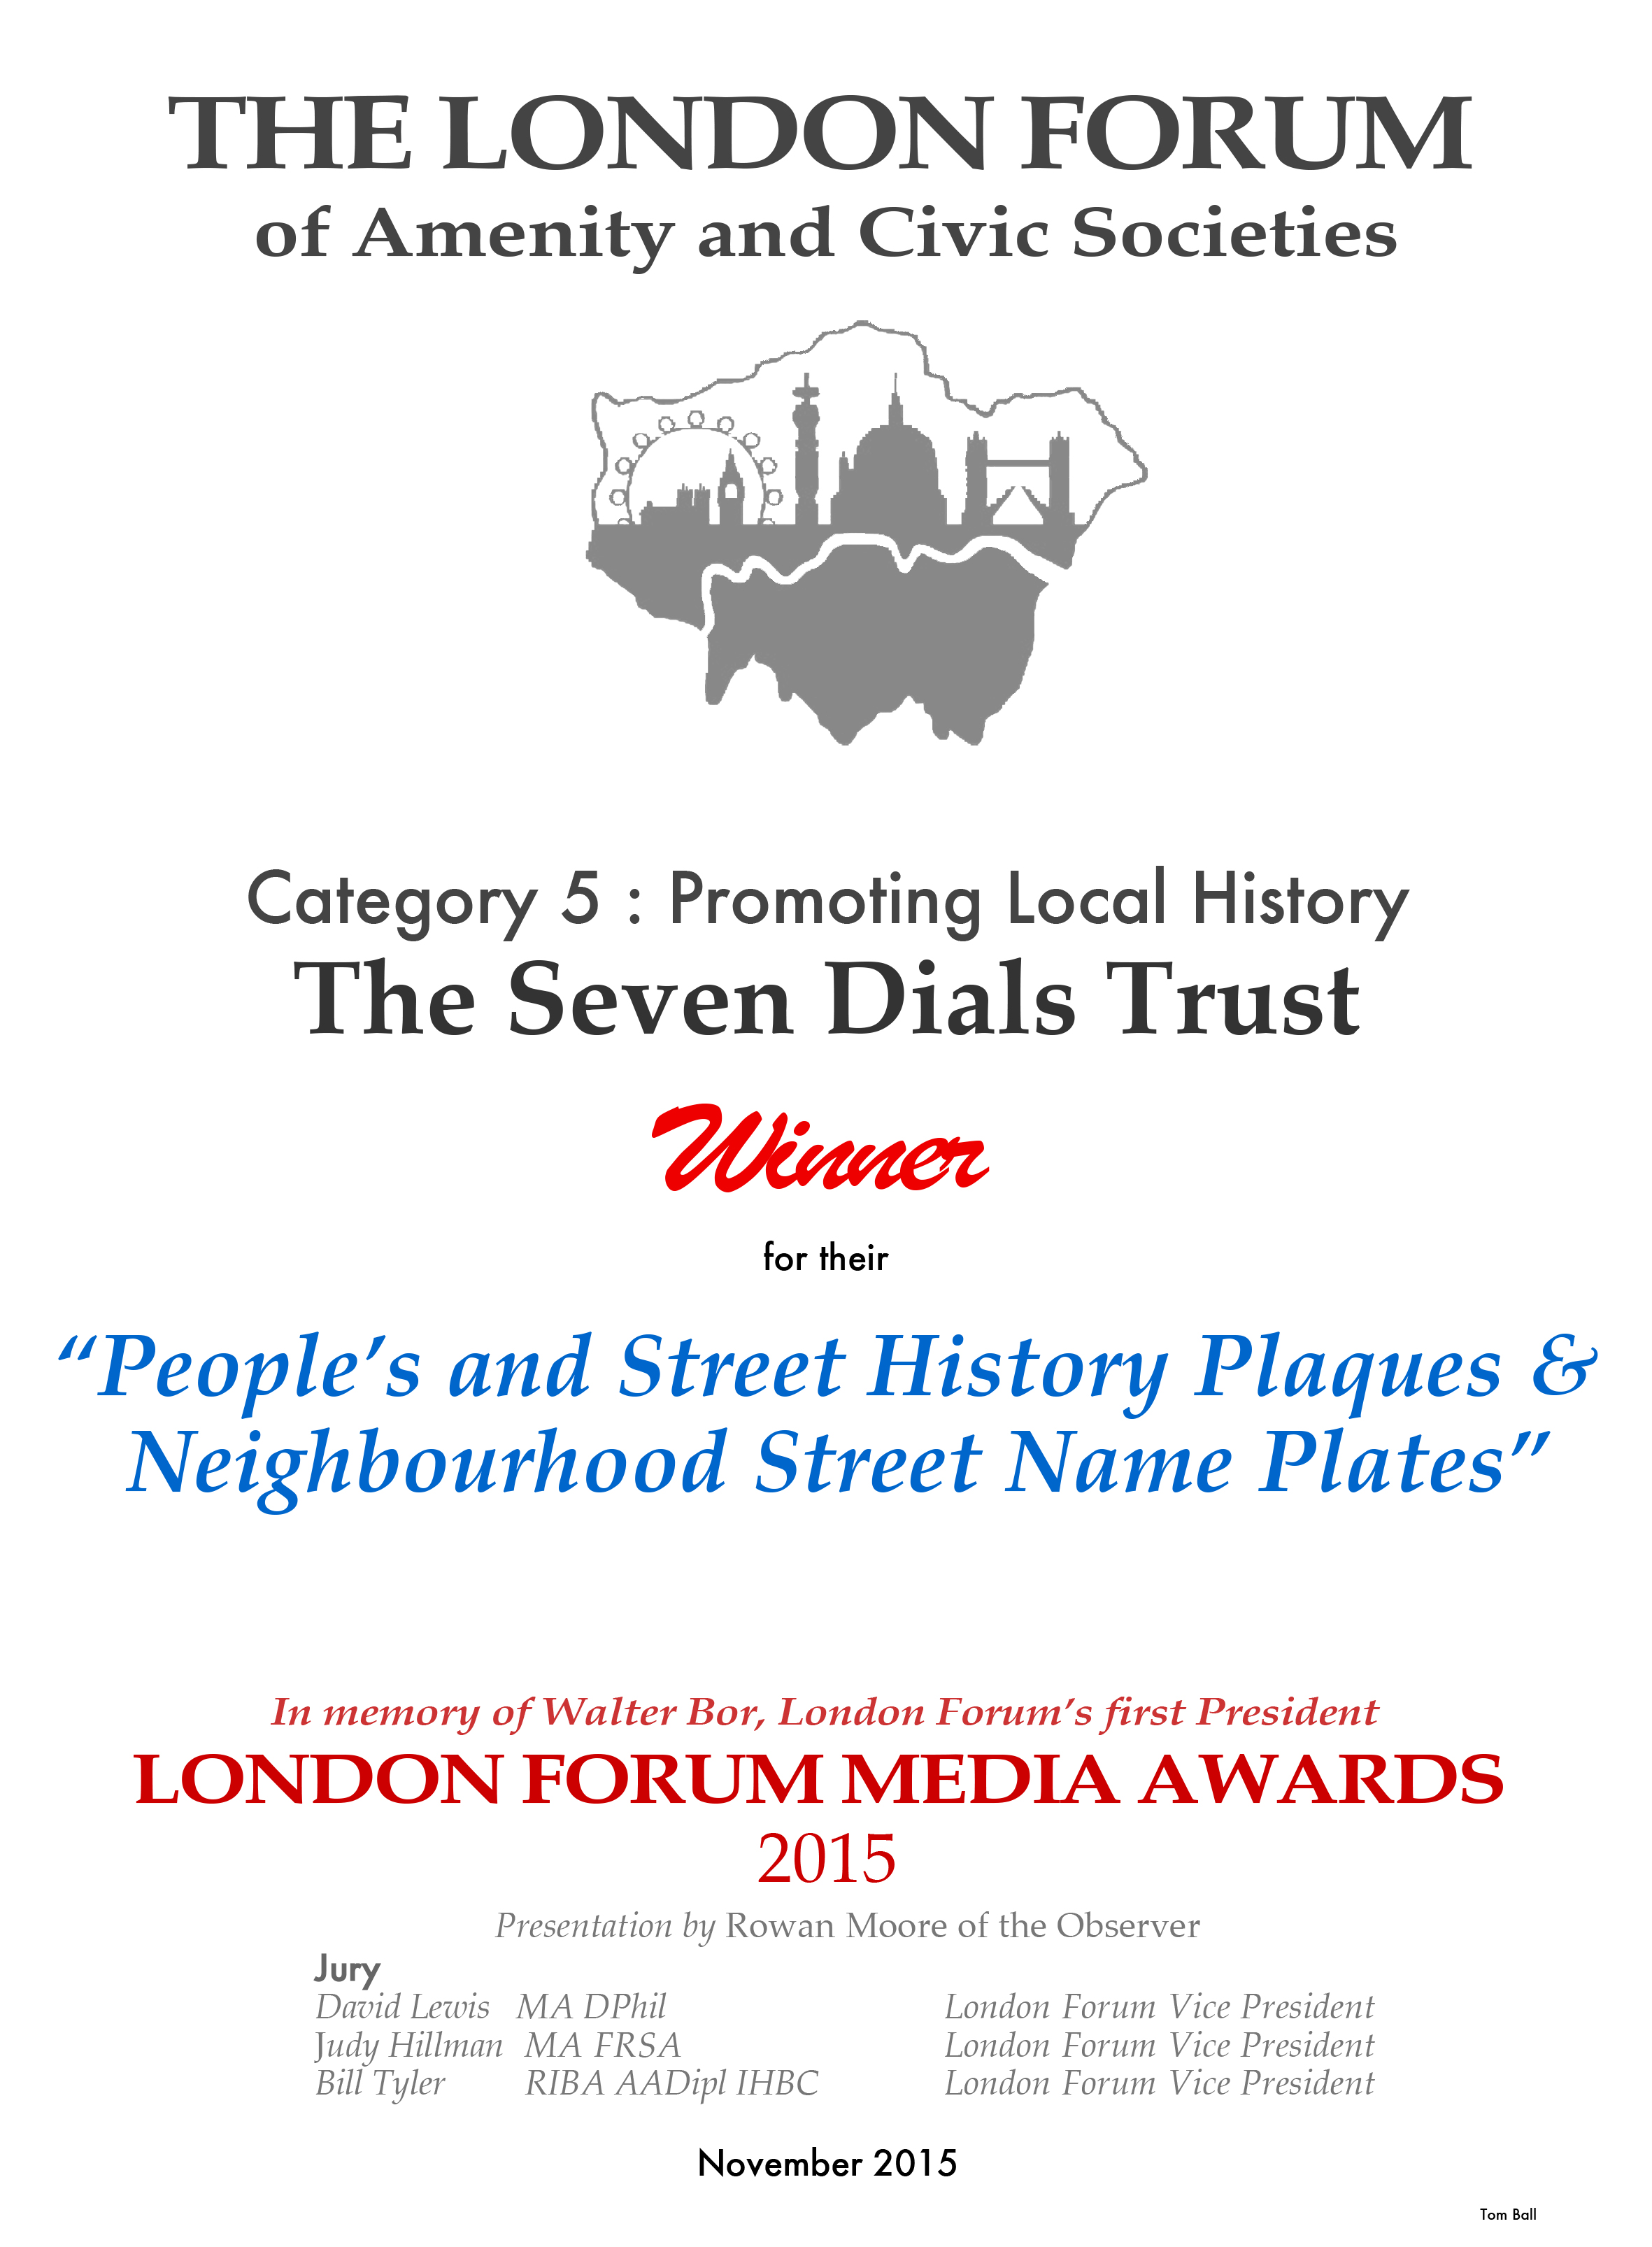 London Forum Award for Promoting Local History